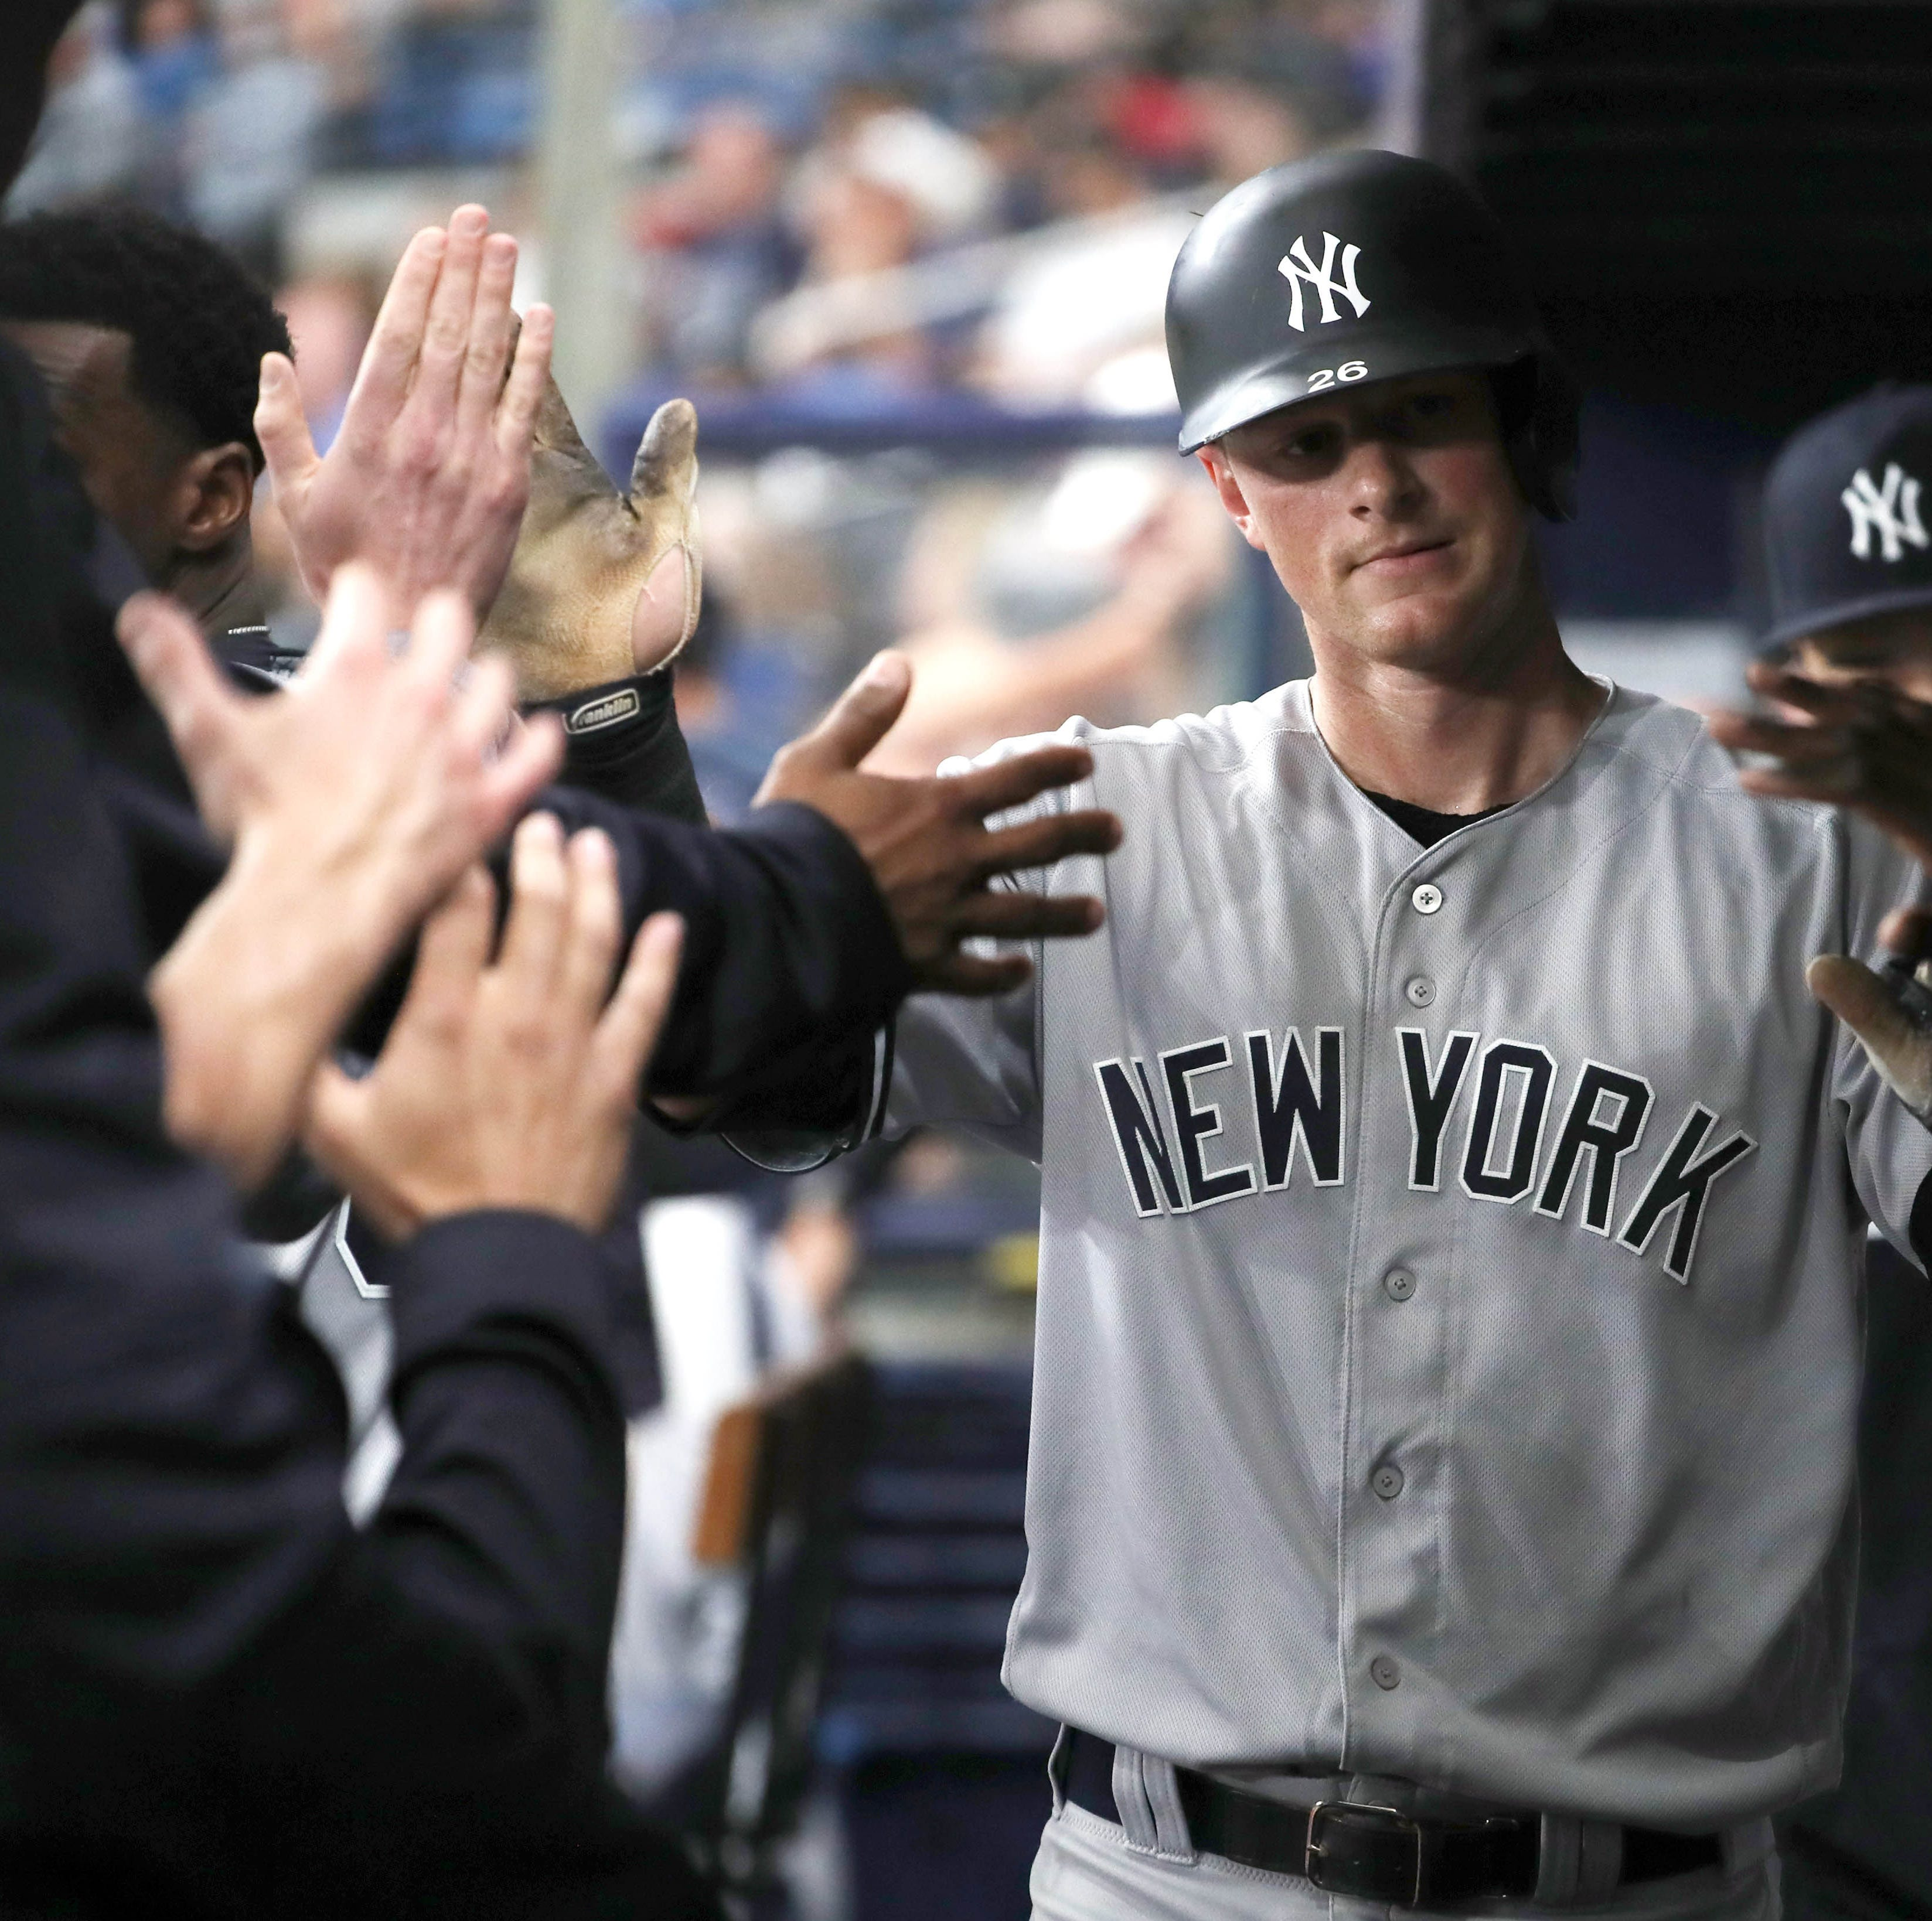 Yankees prevail over Rays in their first head-to-head matchup of 2019